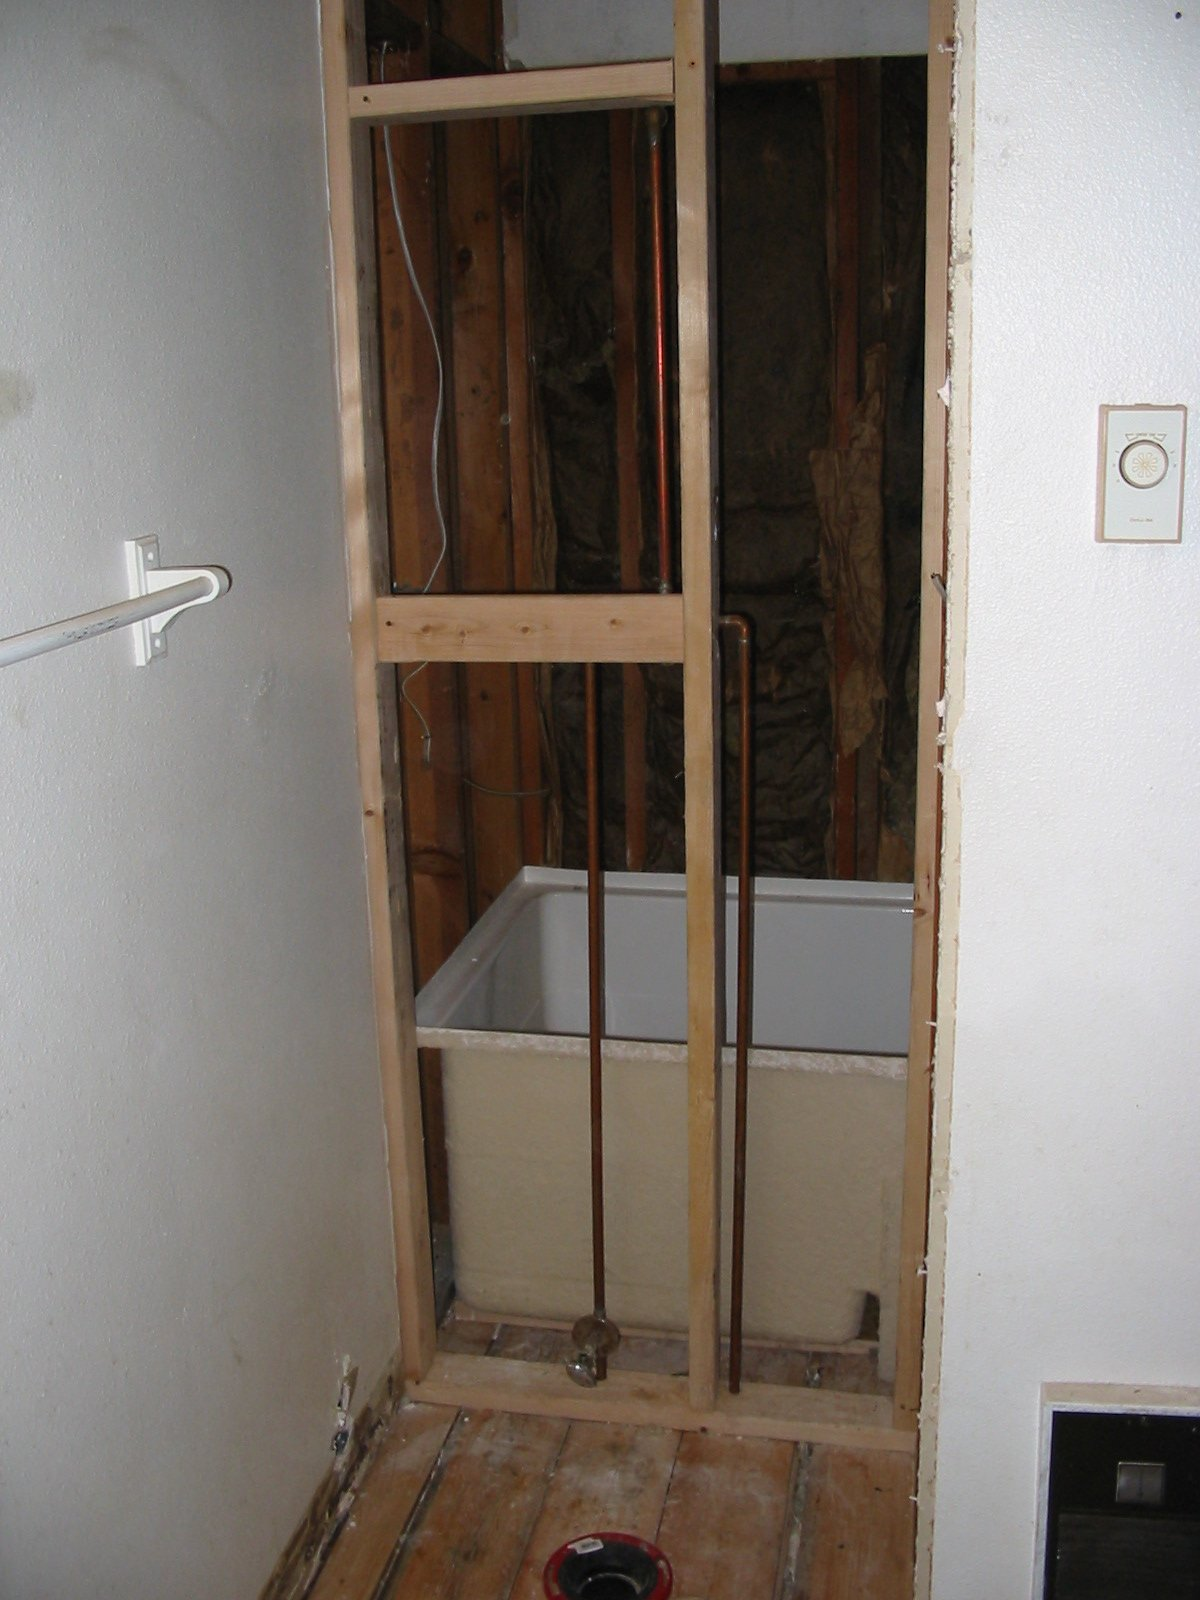 Bathroom remodeling logans residential maintenance for Bathroom remodel vancouver wa